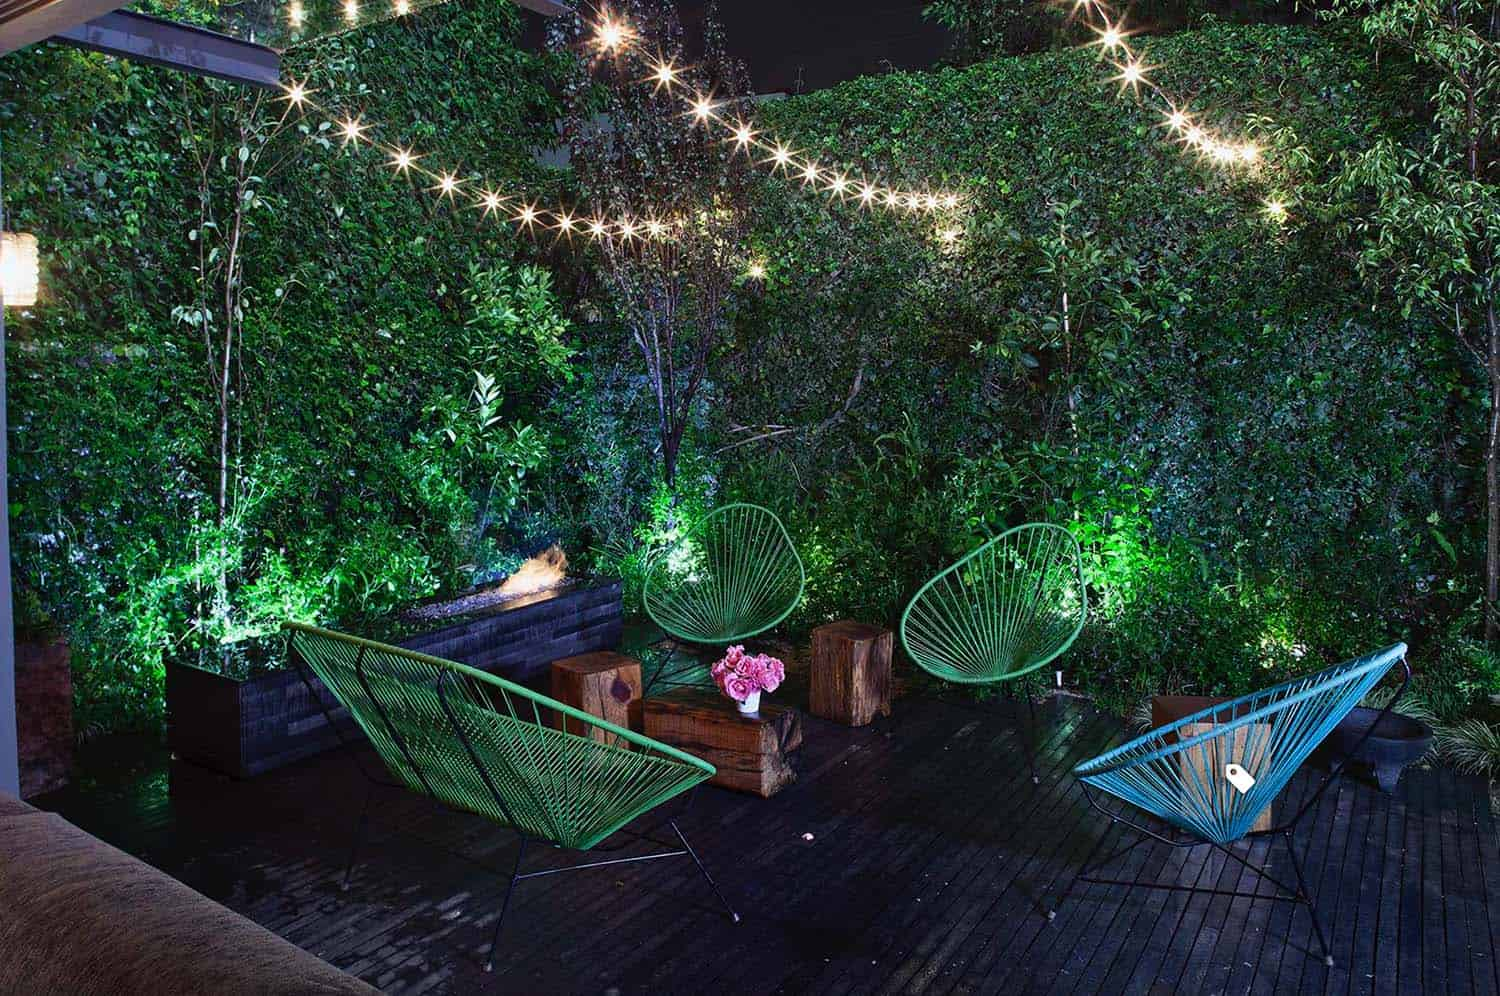 Inspiring String Light Ideas For Outdoors-06-1 Kindesign